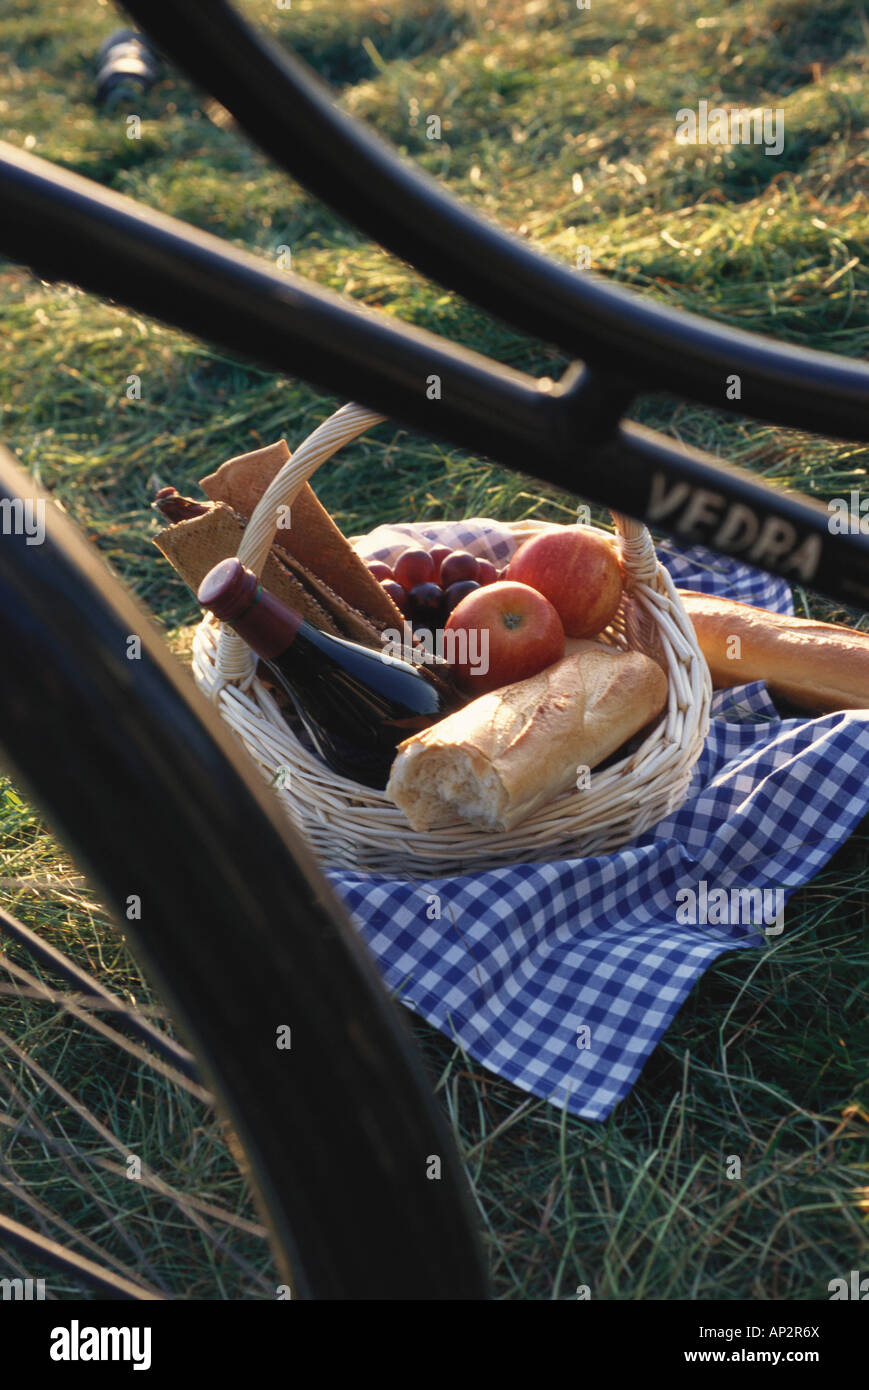 Picnic basket full of food, picnic, food and drink, lesiure, Germany - Stock Image